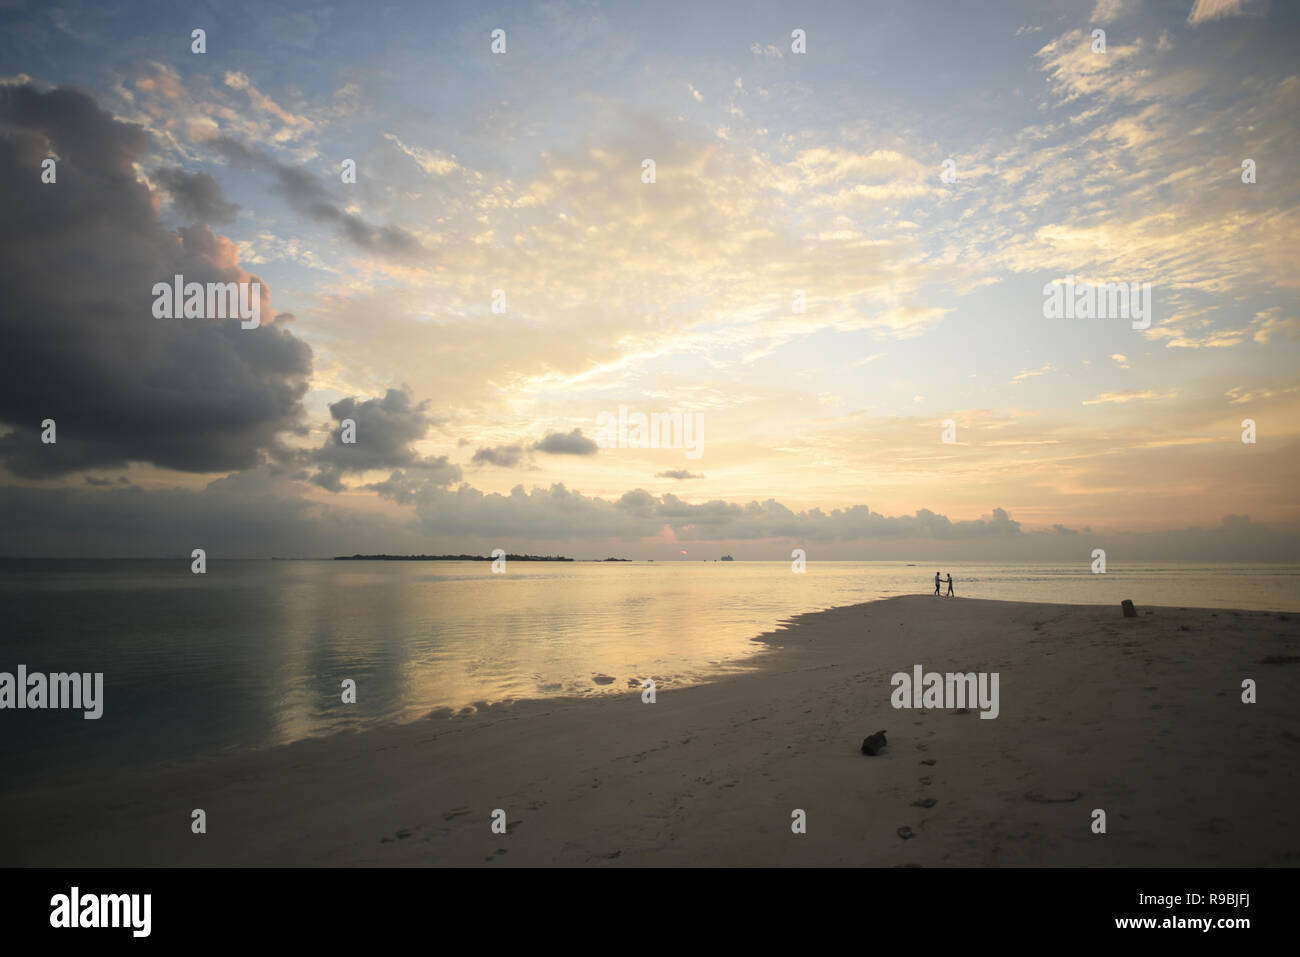 Peaceful sunset in the Maldives with sandbank - Stock Image